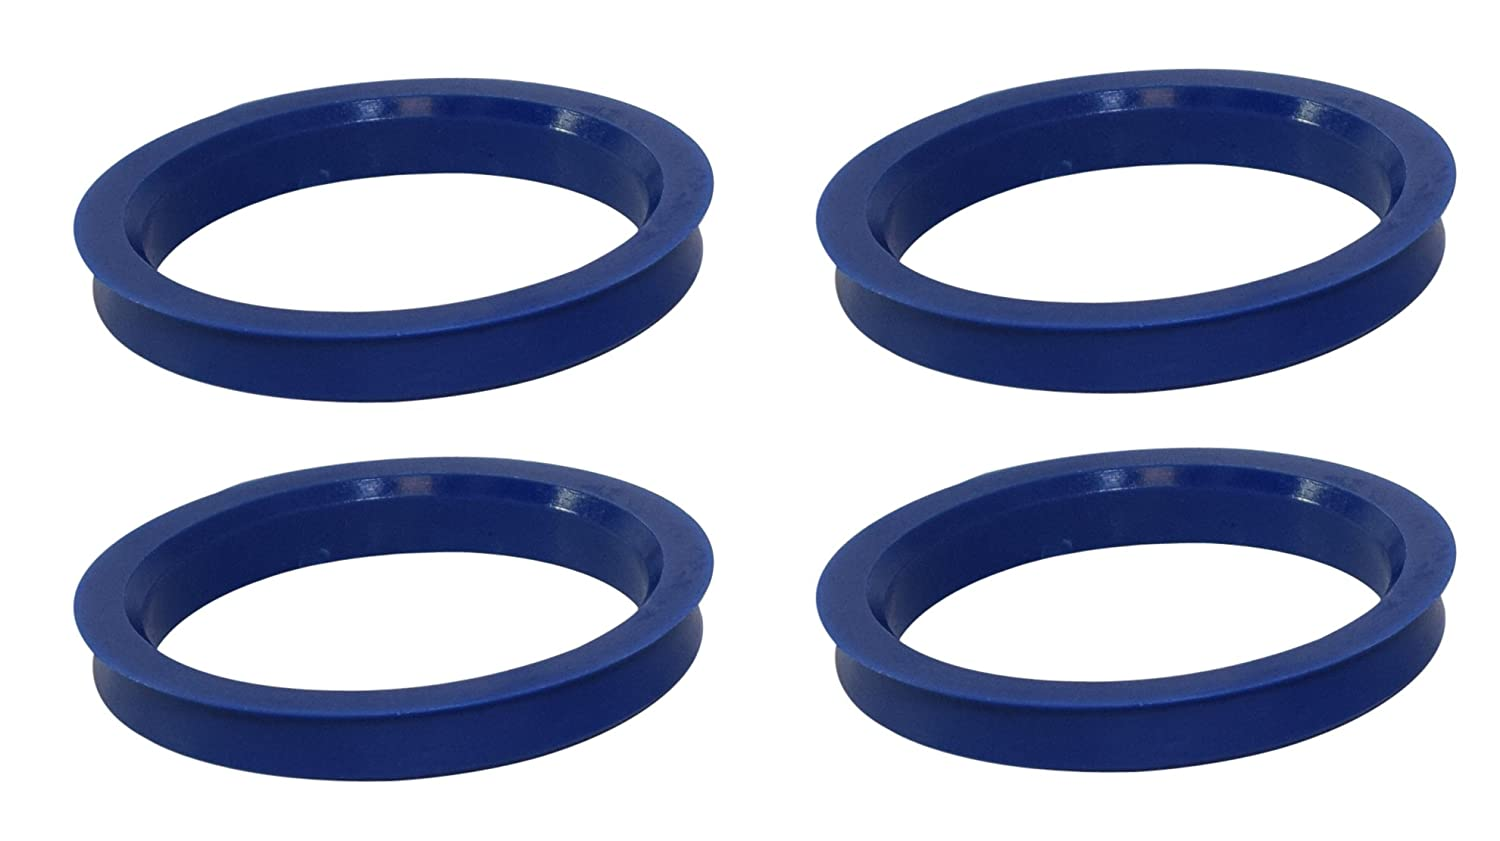 Coyote Wheel Accessories 73-6390 Hub Centric Ring, Set of 4 (73mm OD to 63.90mm ID)